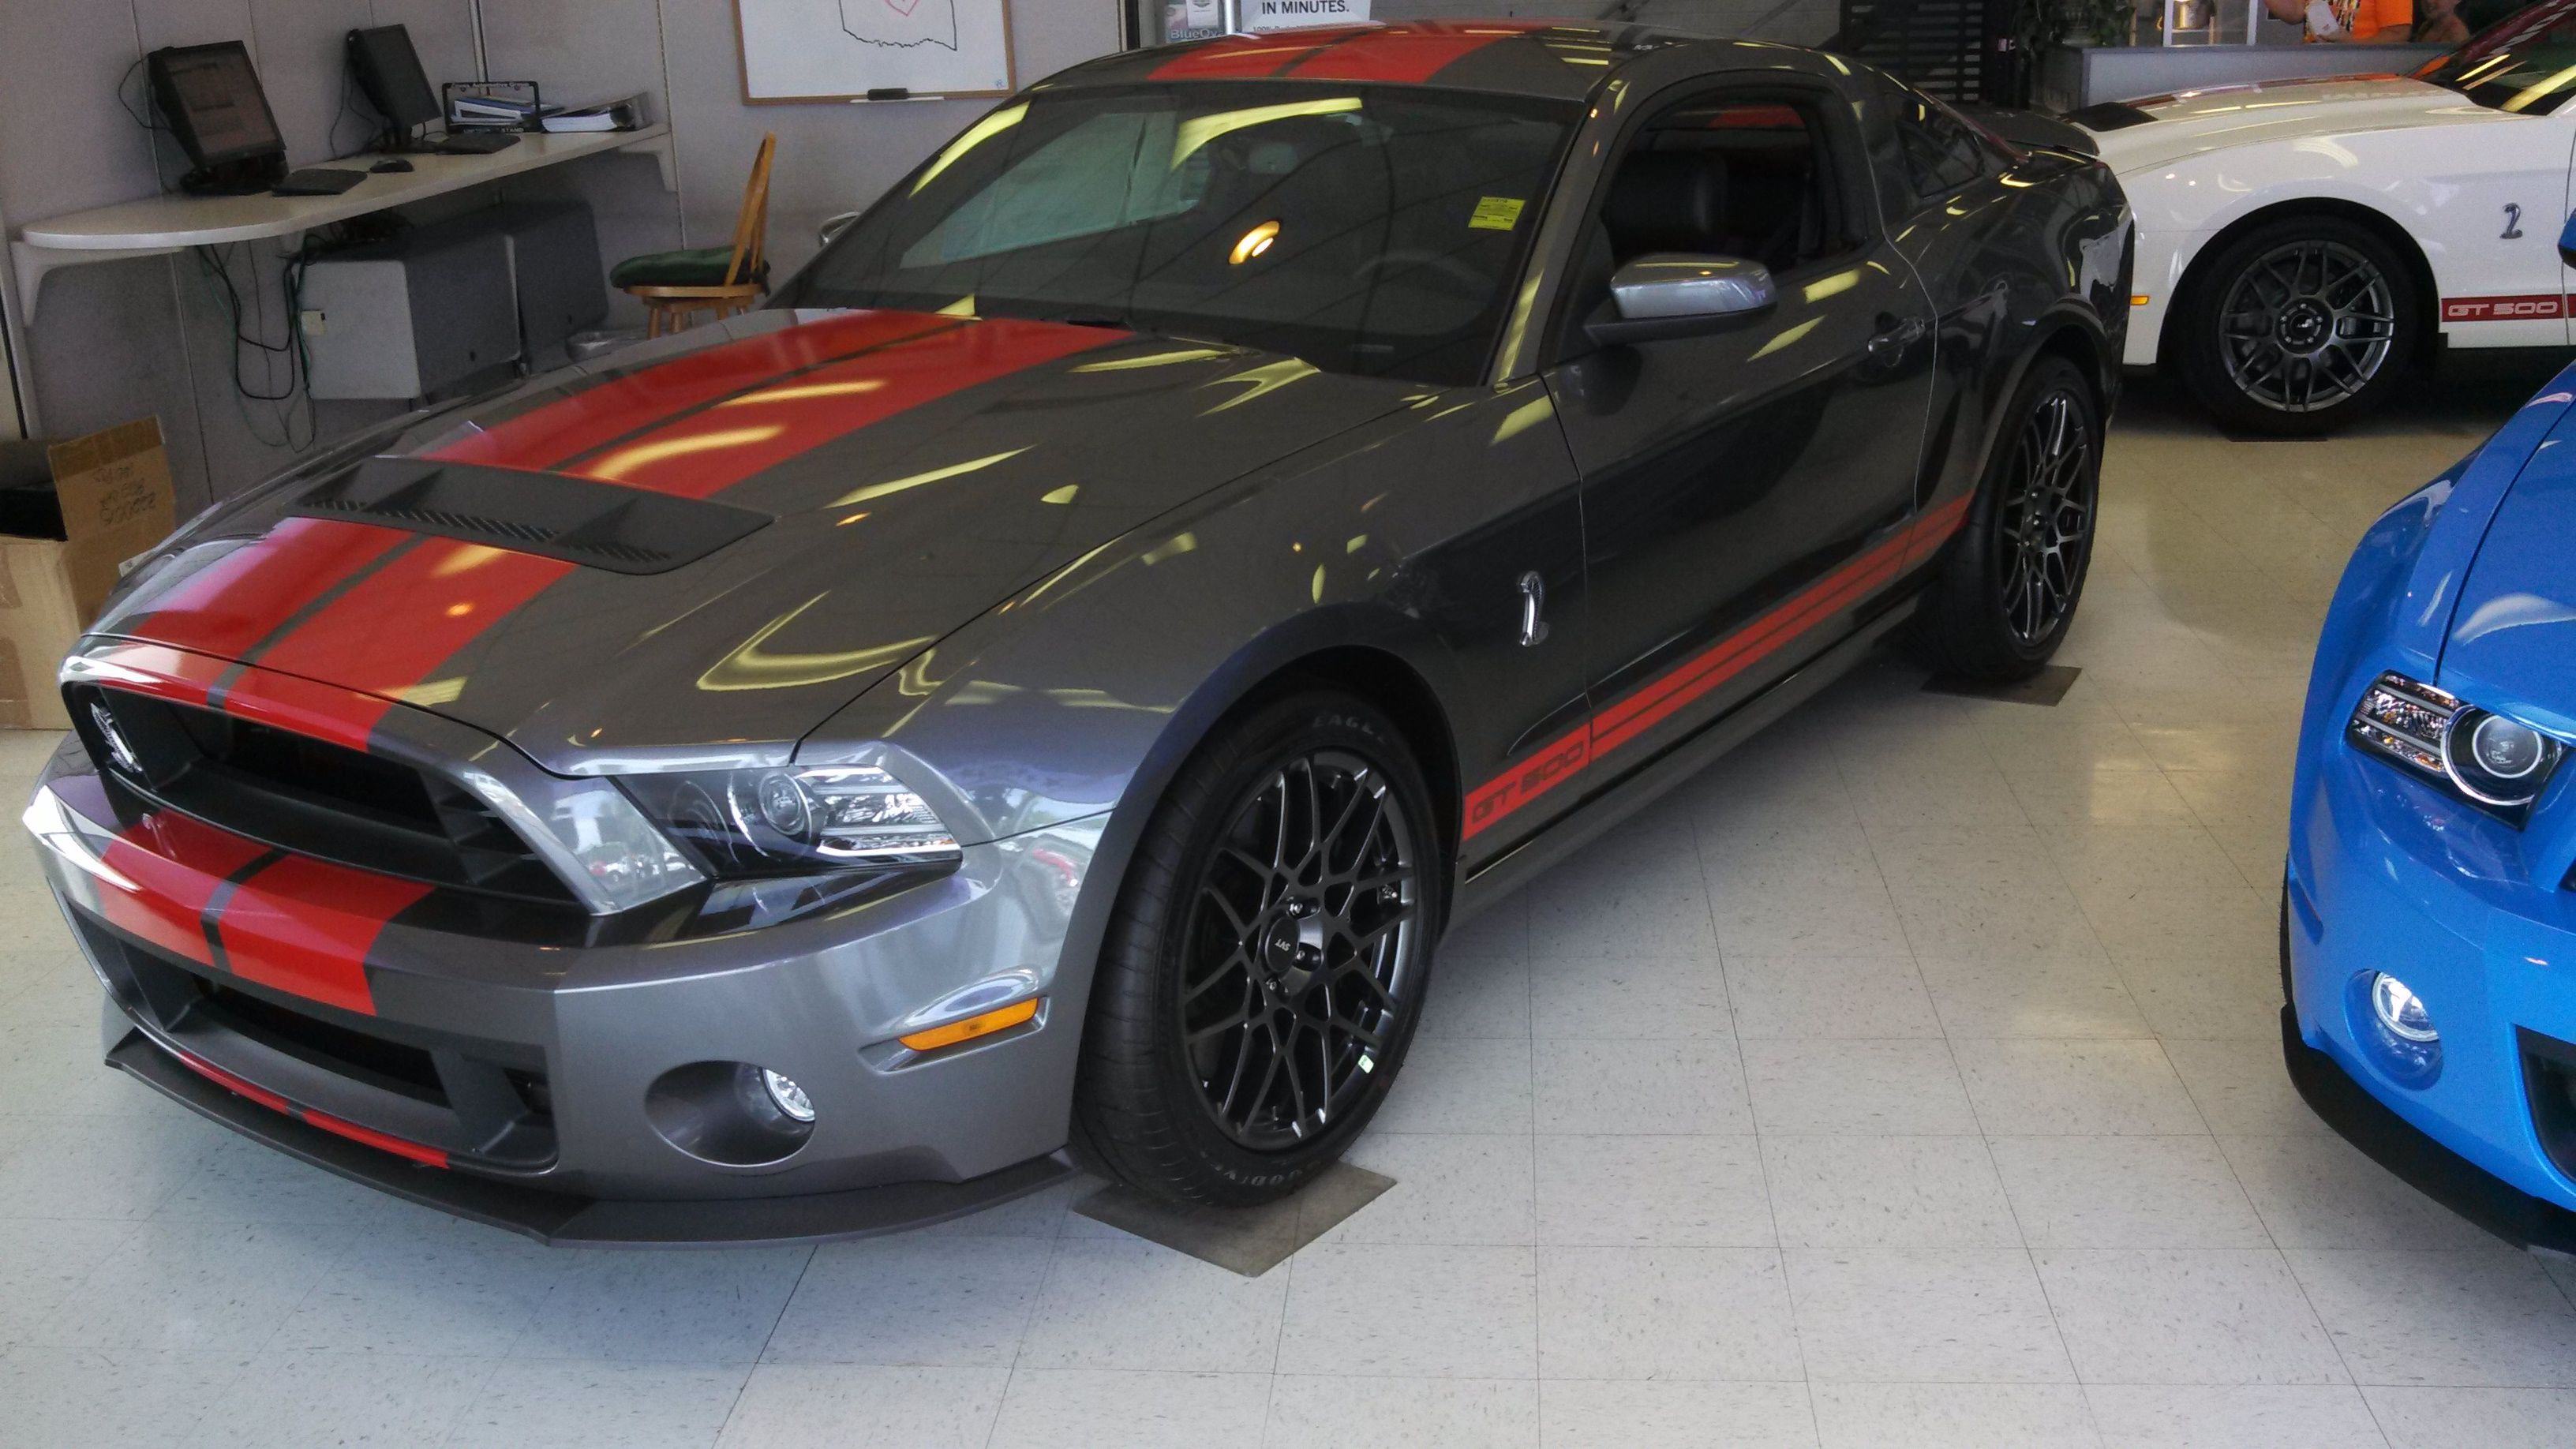 2014 Ford Mustang Shelby Gt 500 With A 5 8l V8 Engine Paired To A